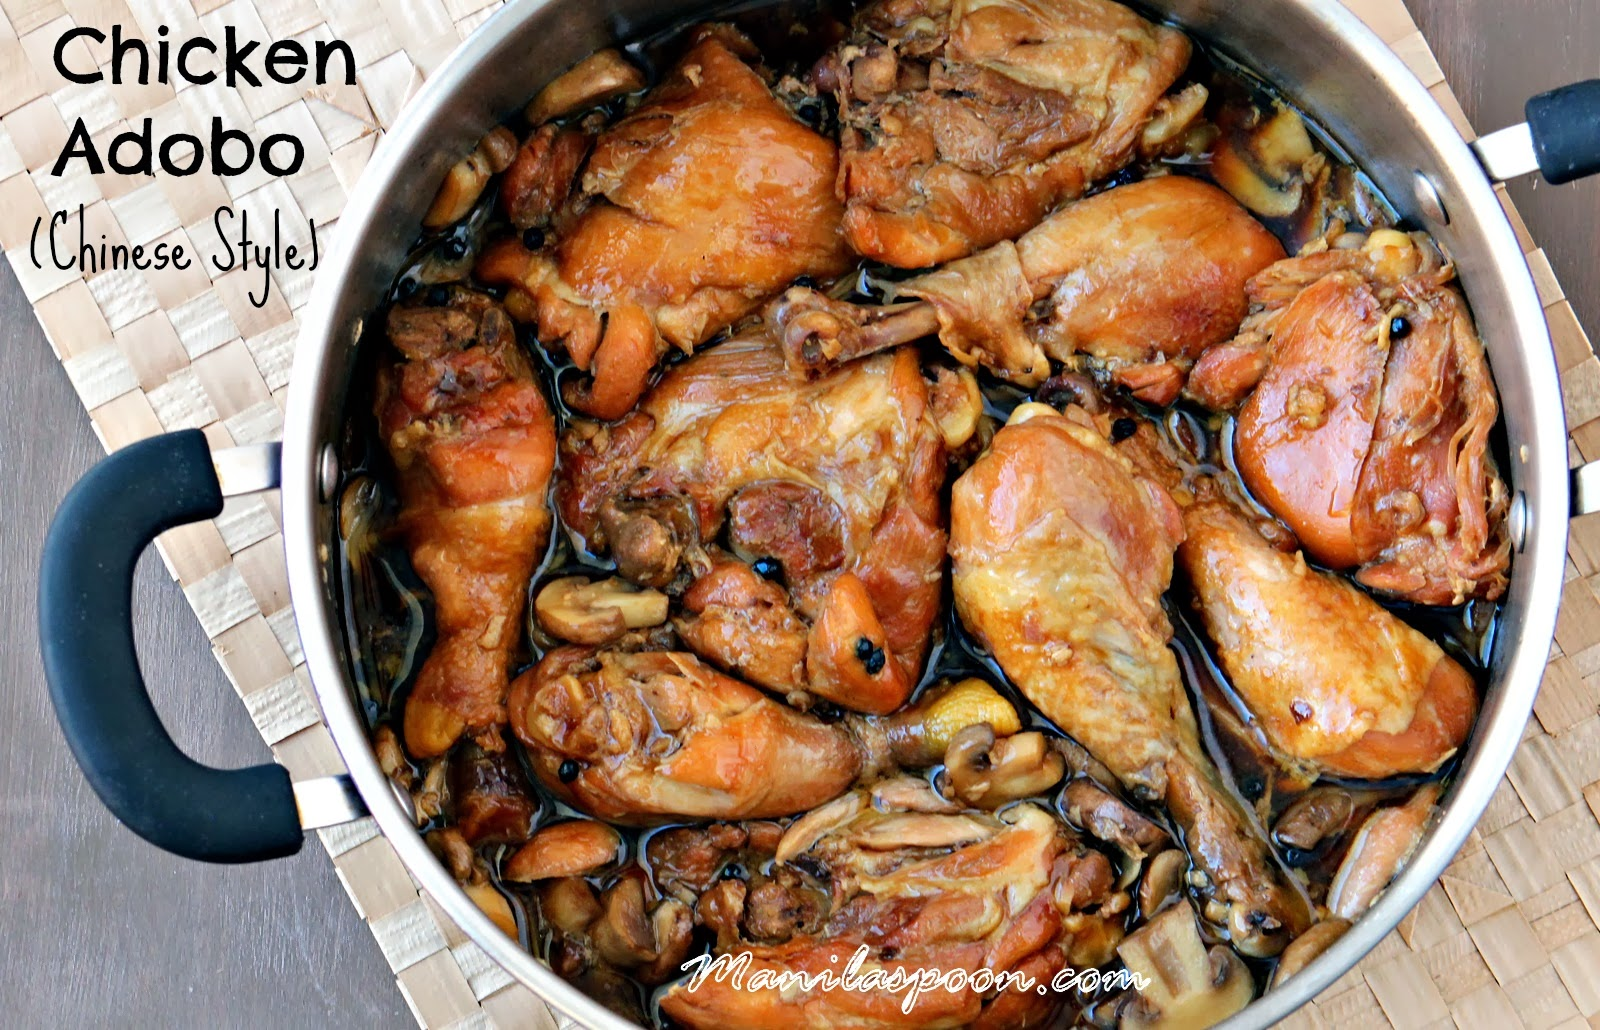 This sweet-salty, vinegar-free Chicken Adobo version is so yummy! You'll be mopping up all that sauce on your plate. #chicken #adobo